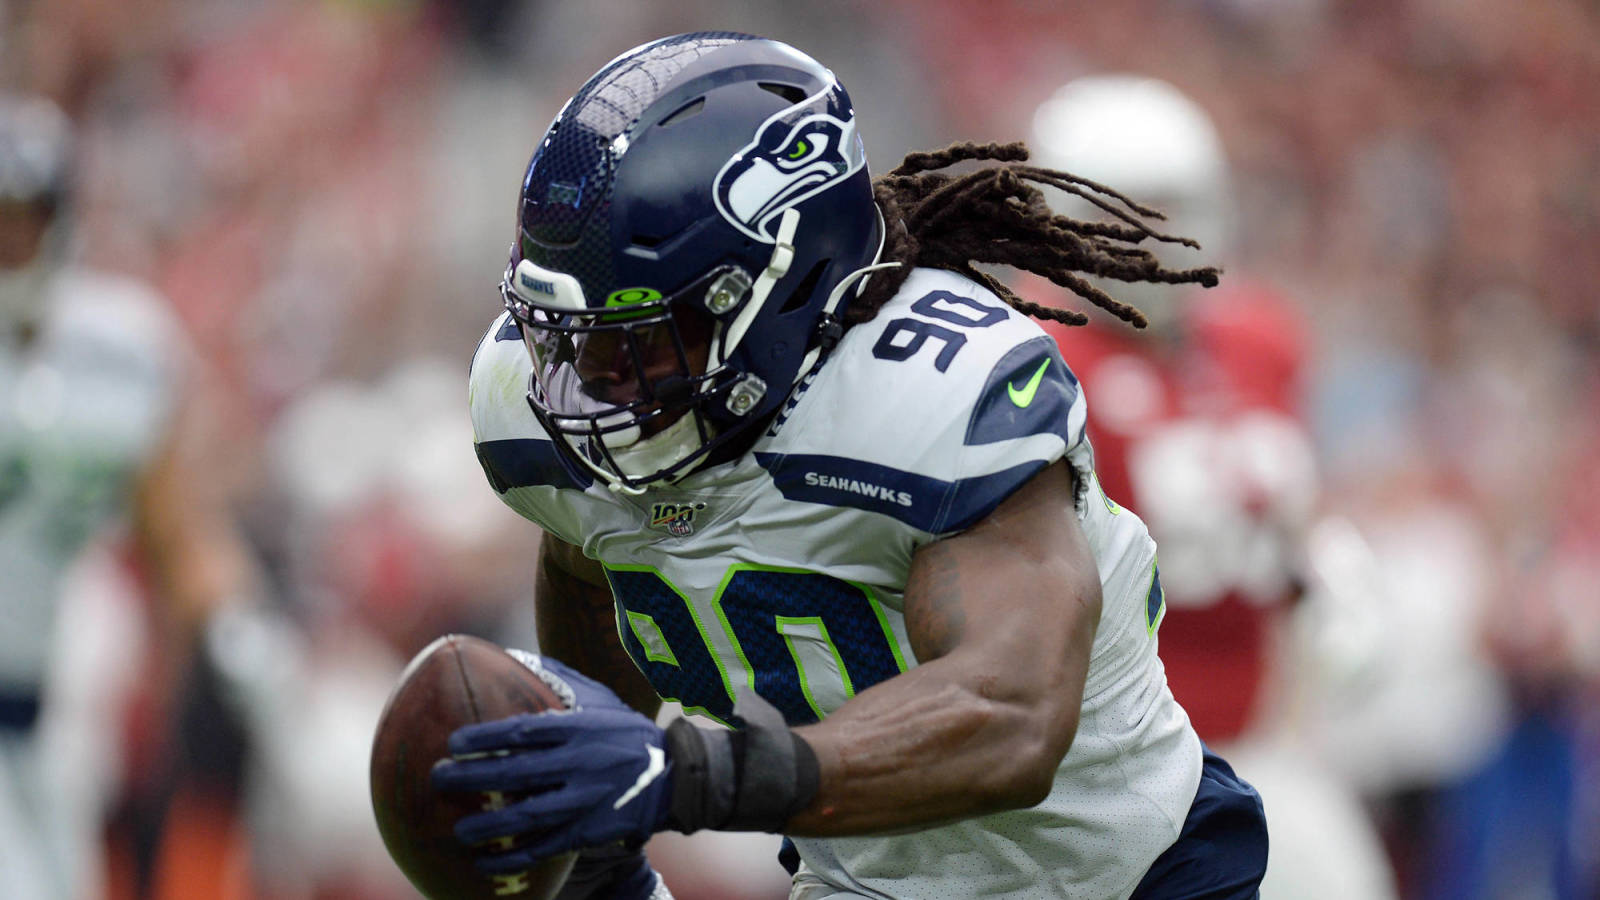 Photo of Reported Seahawks offer for Jadeveon Clowney revealed – My Hot News Pakistan – ICC Sports